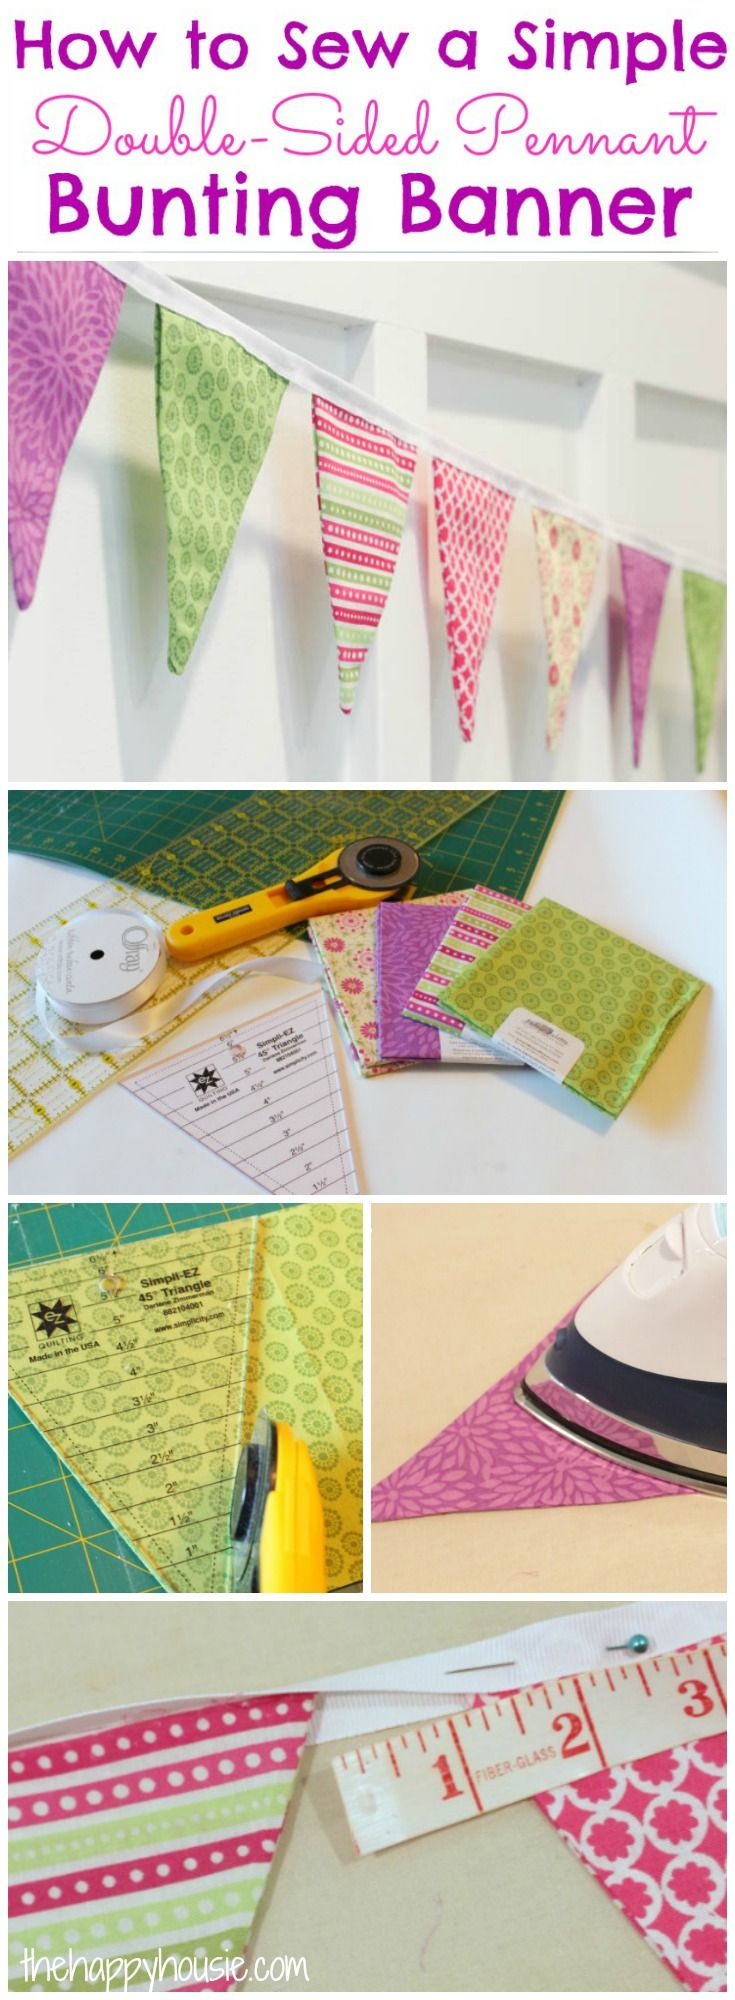 How to Sew a Simple Double-Sided DIY Pennant Banner | Nähen ...